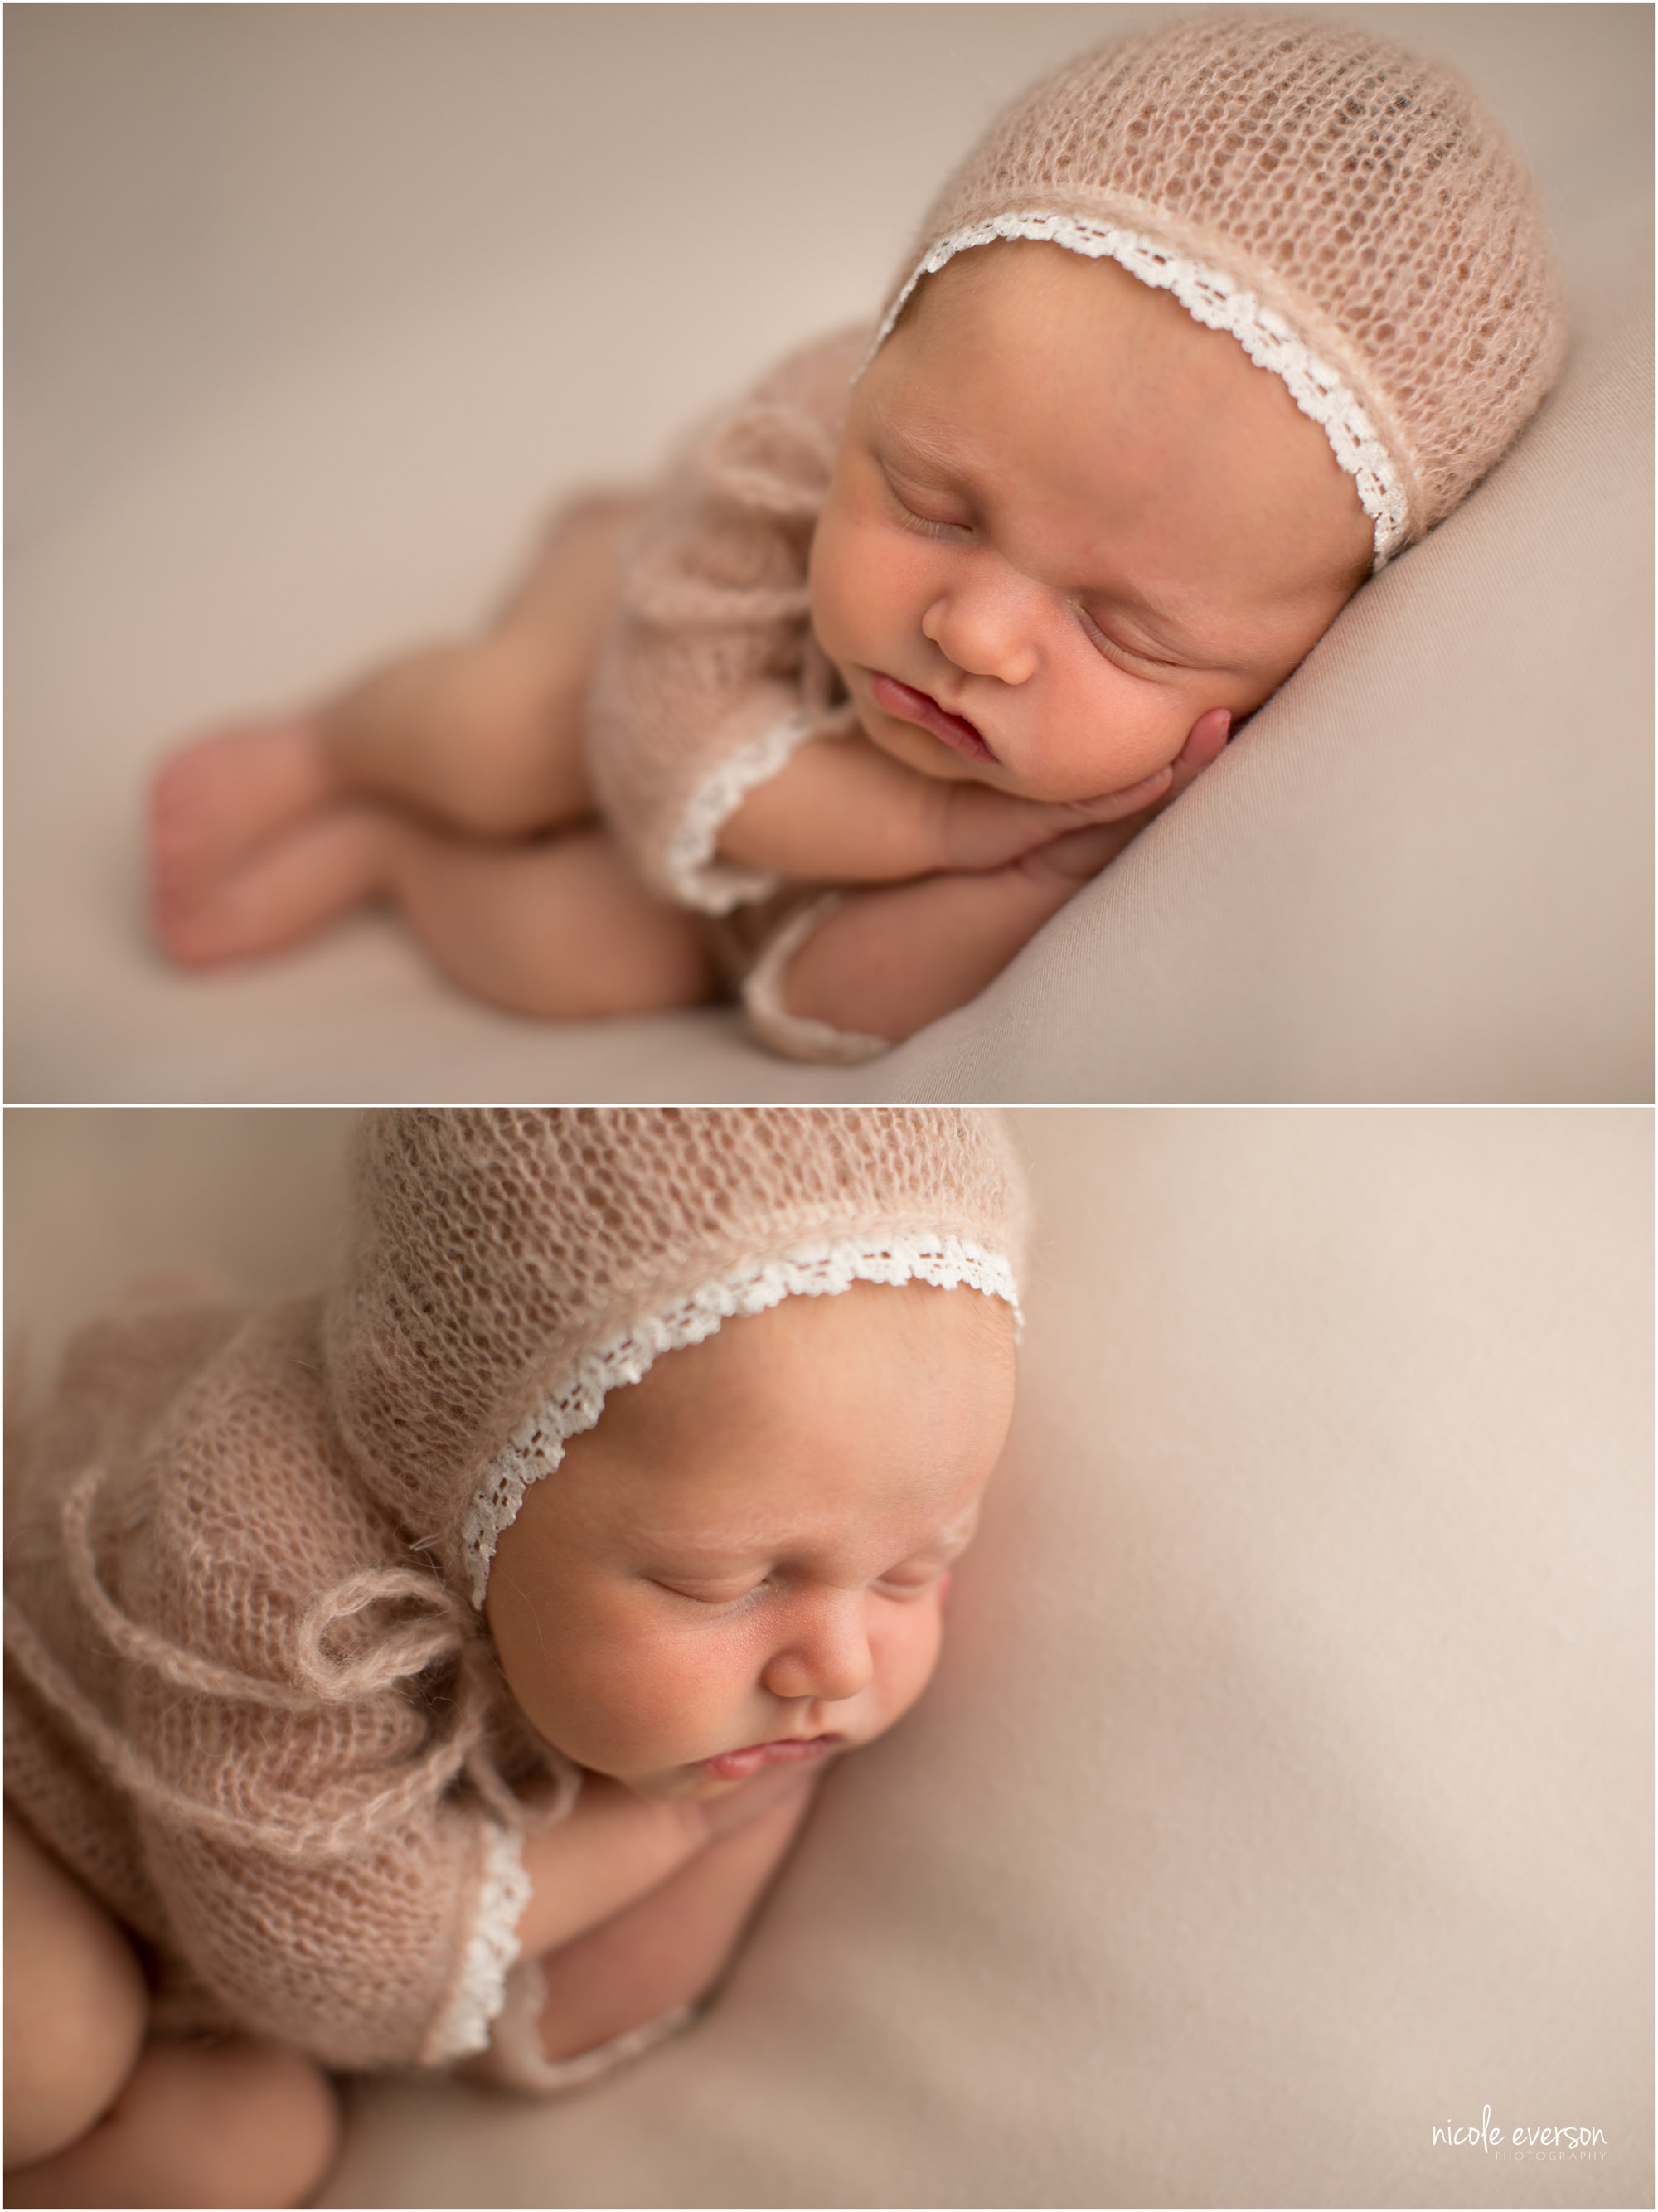 newborn photography with Nicole Everson Photography